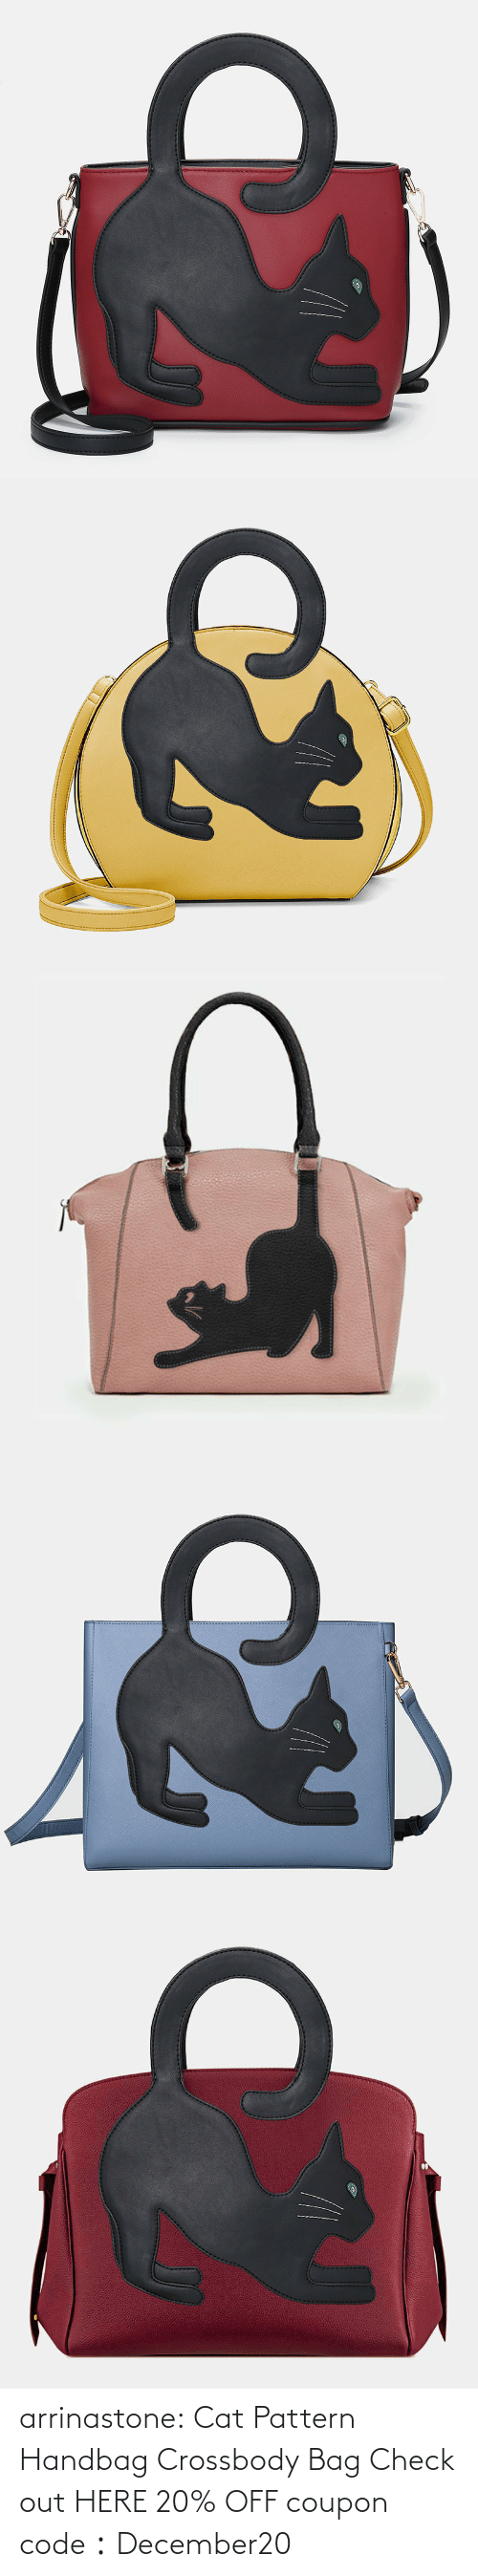 code: arrinastone: Cat Pattern Handbag Crossbody Bag Check out HERE 20% OFF coupon code:December20